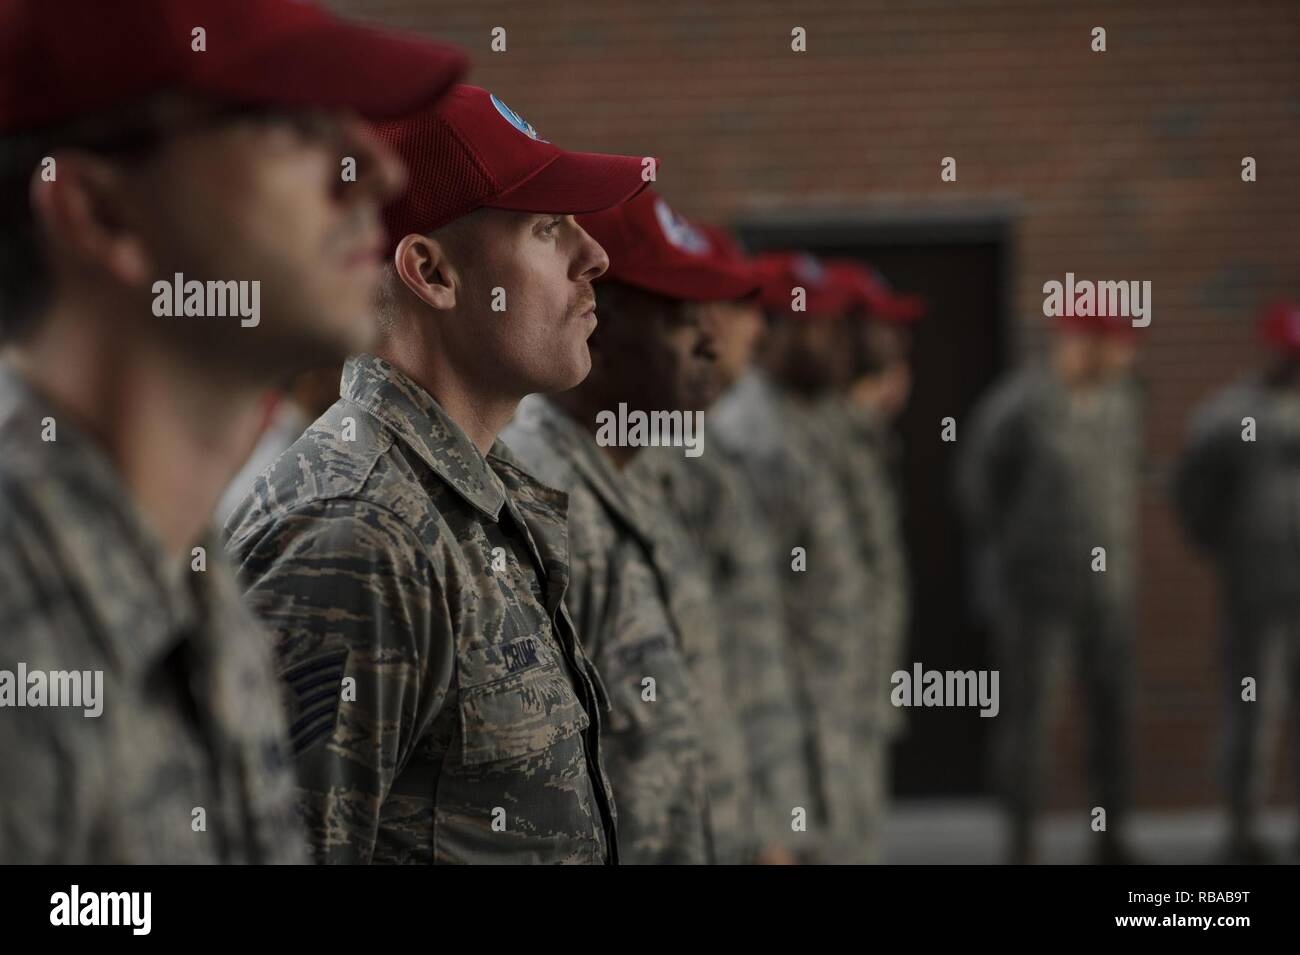 560th Red Horse Squadron High Resolution Stock Photography And Images Alamy